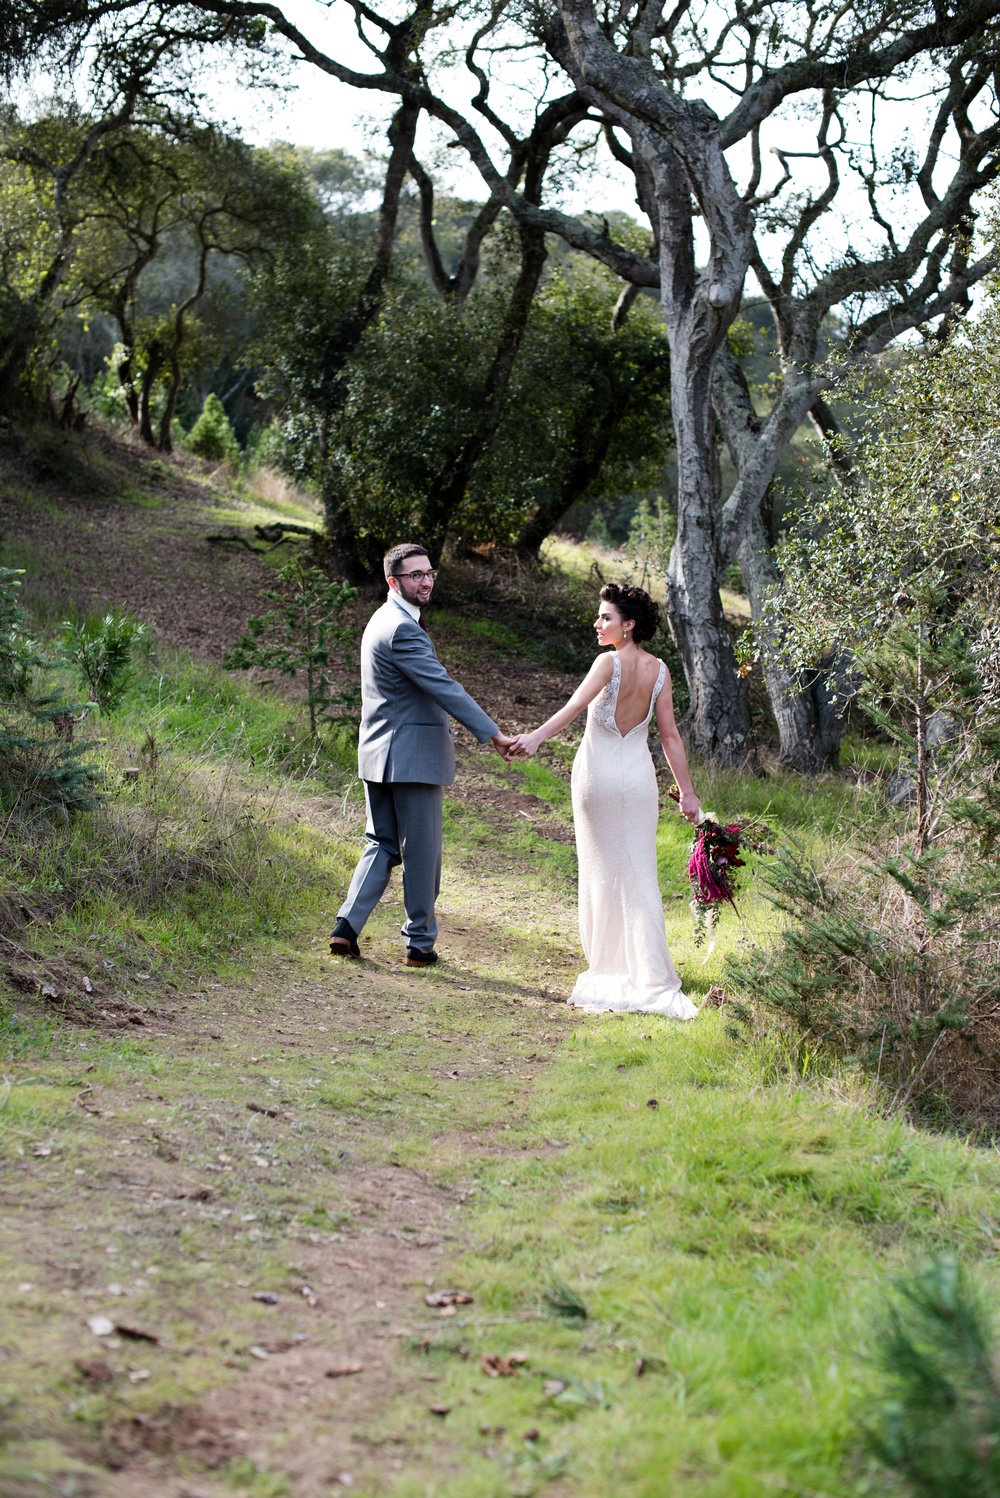 www.santabarbarawedding.com | Carrie Pollard | Church's Christmas Trees | Bride and Groom